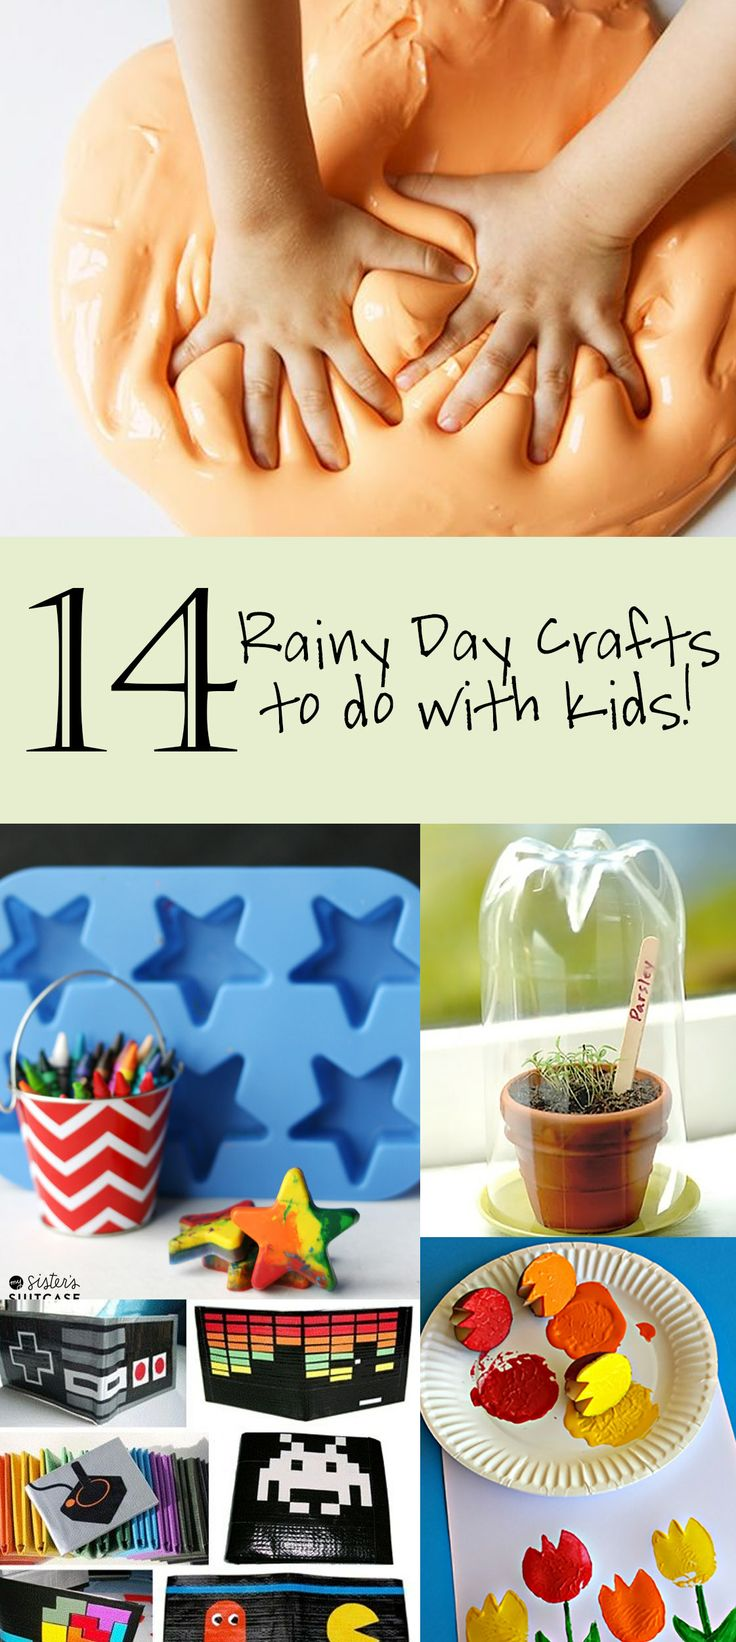 14 Rainy Day Crafts to do with Kids!